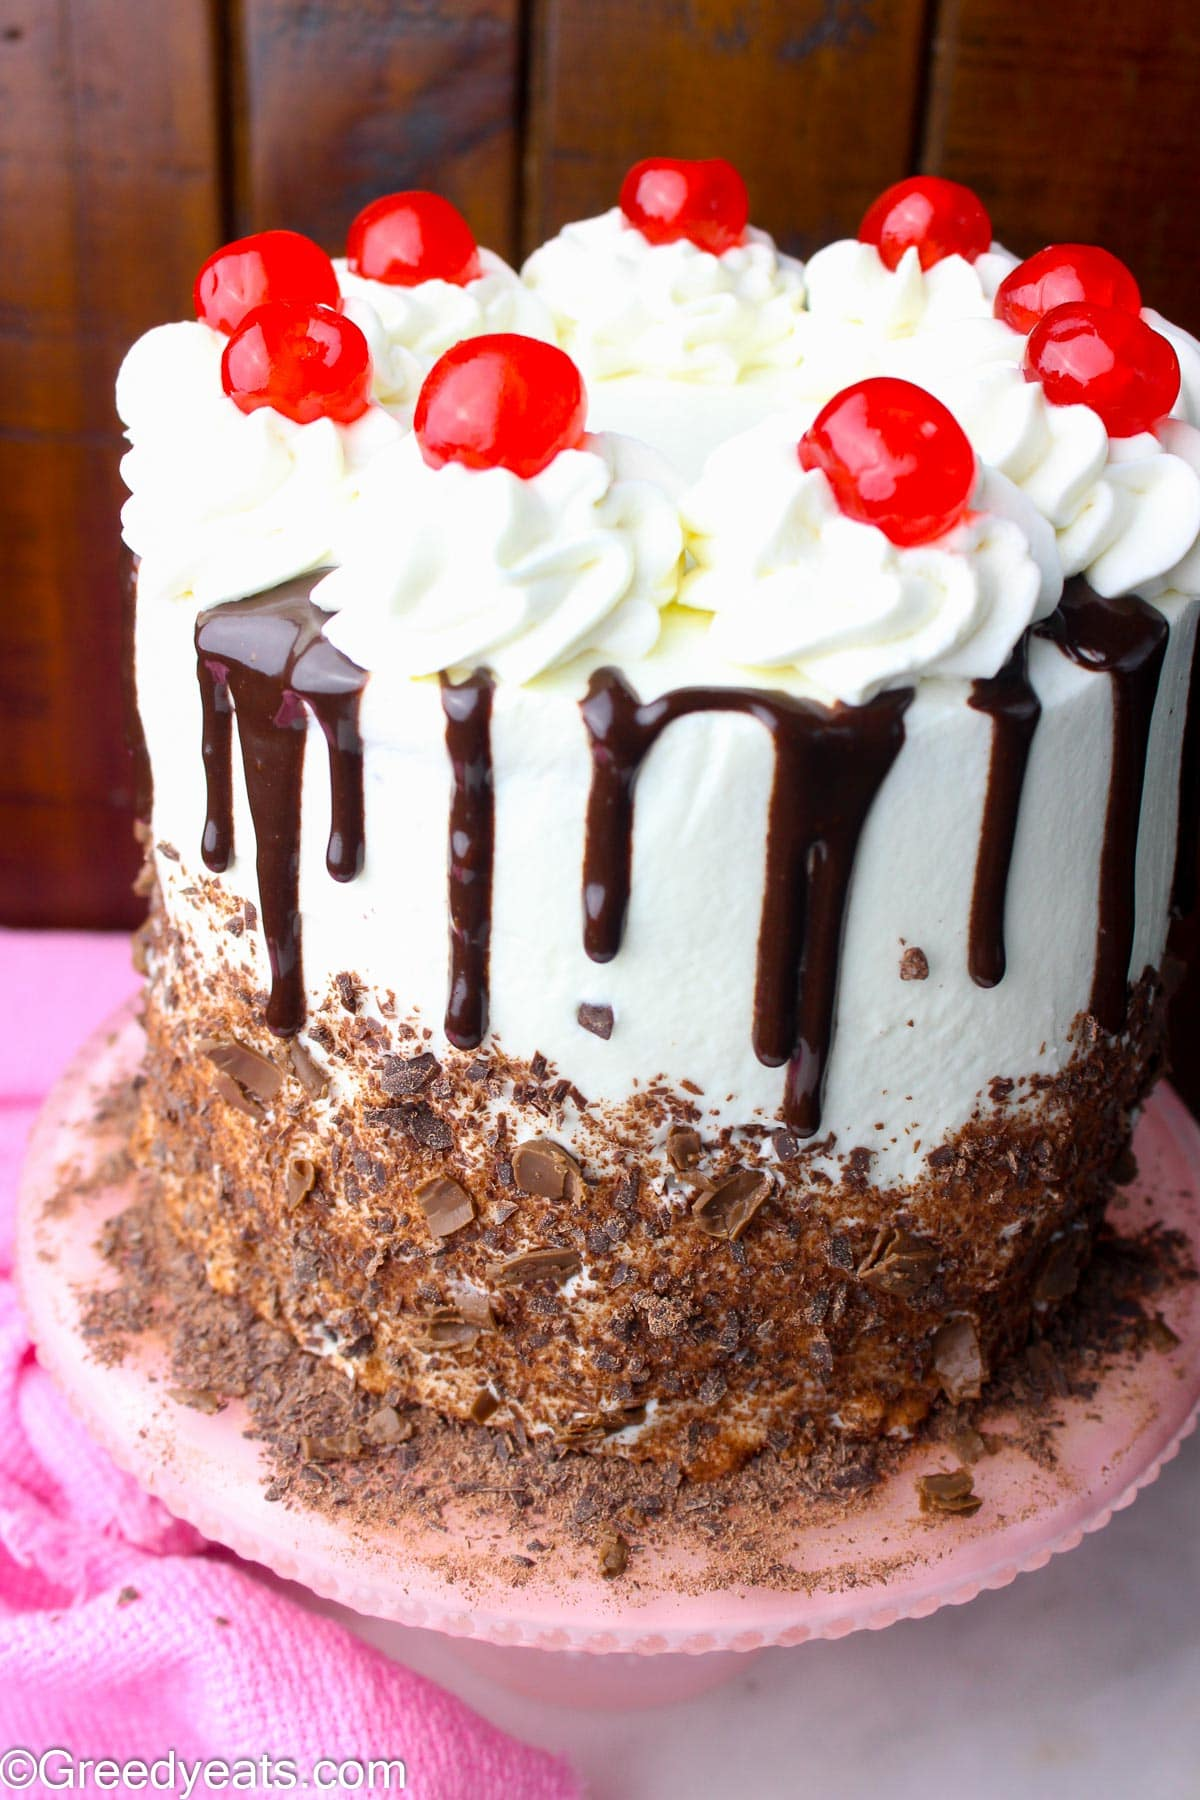 Easy Black Forest Cake Recipe, baked in 6 inch pans, layered with cherries and whipped cream topping.